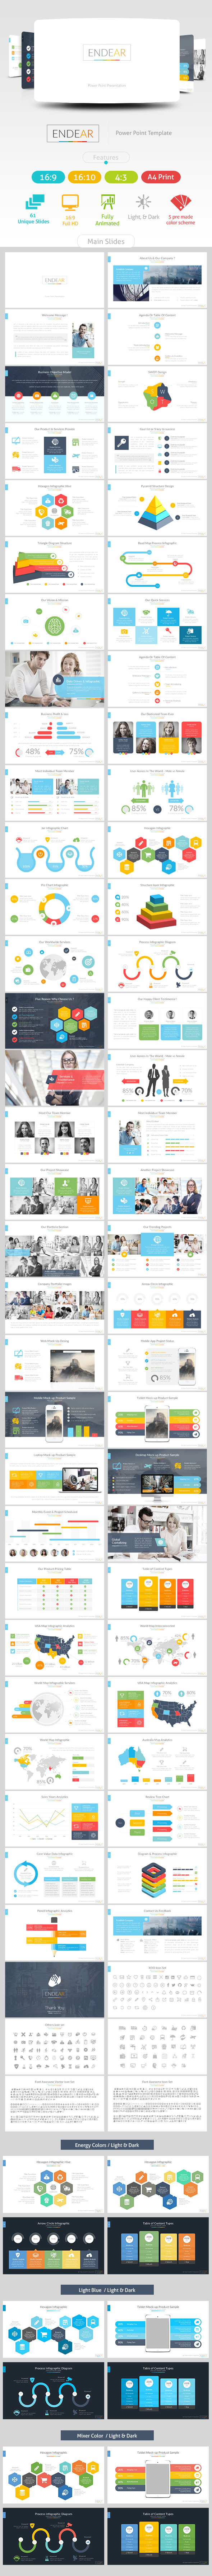 GraphicRiver Endear Power Point Presentation 11338335